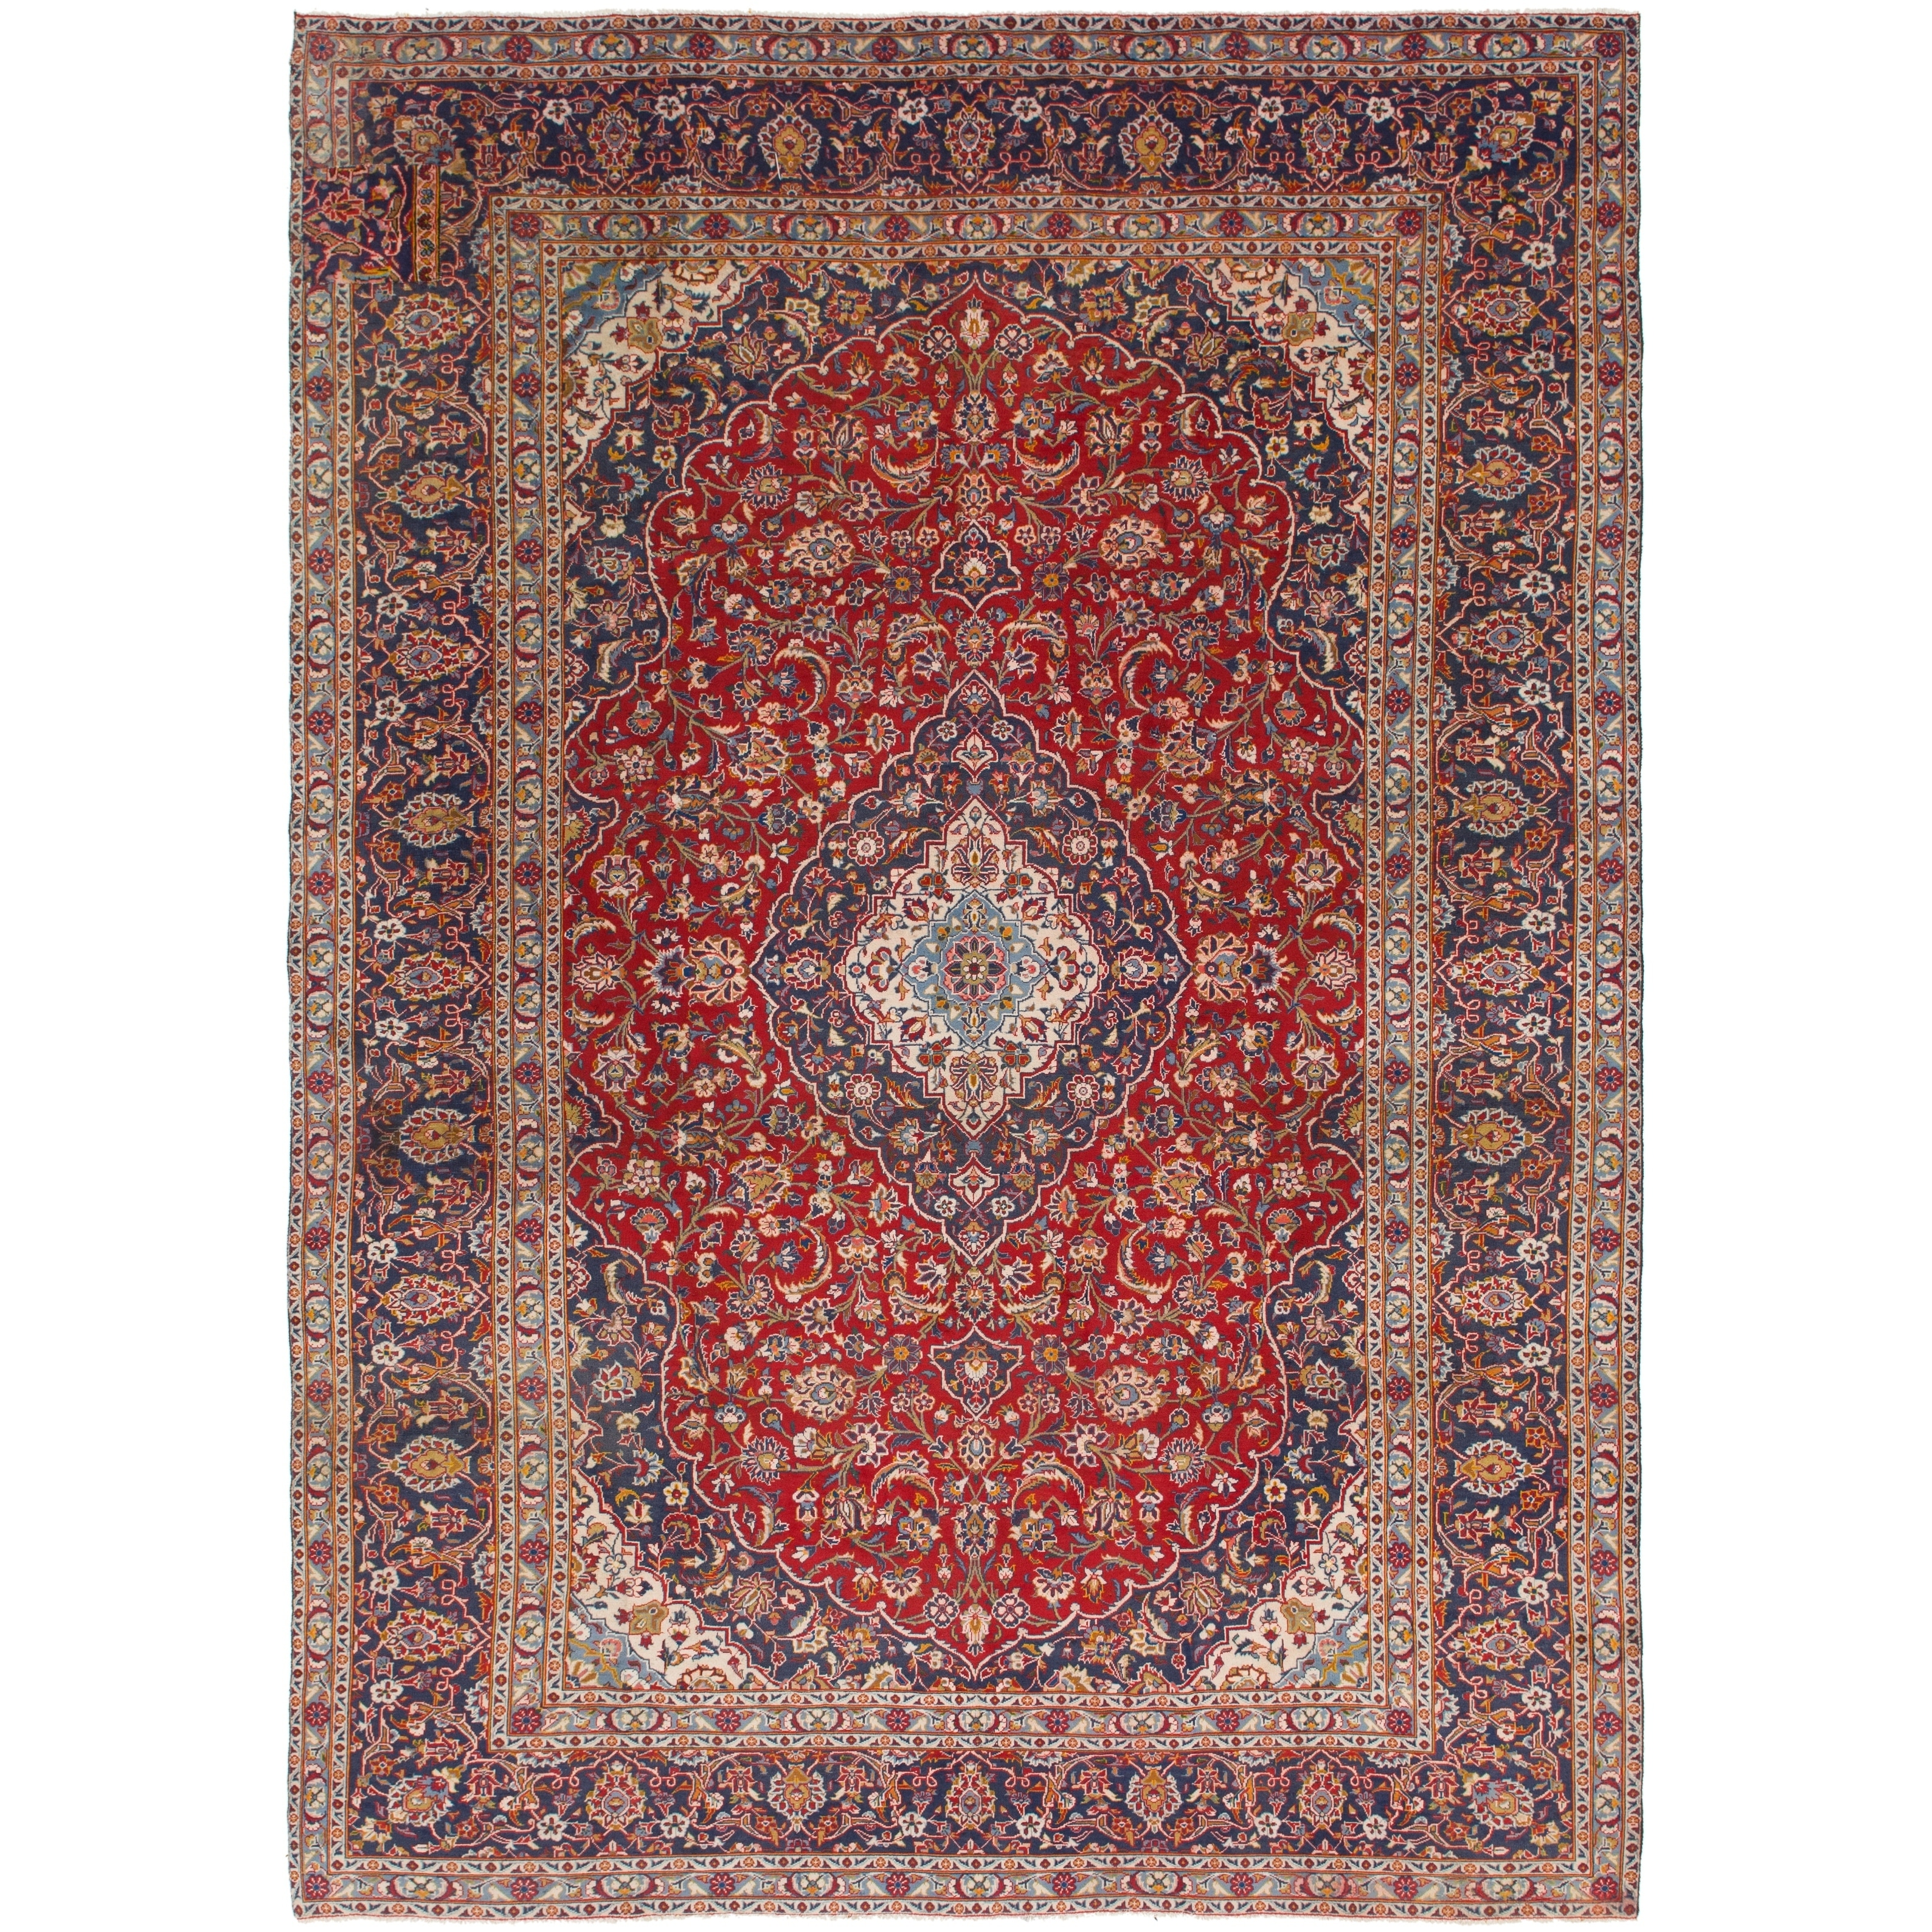 Hand Knotted Kashan Semi Antique Wool Area Rug - 9 2 x 13 2 (Red - 9 2 x 13 2)